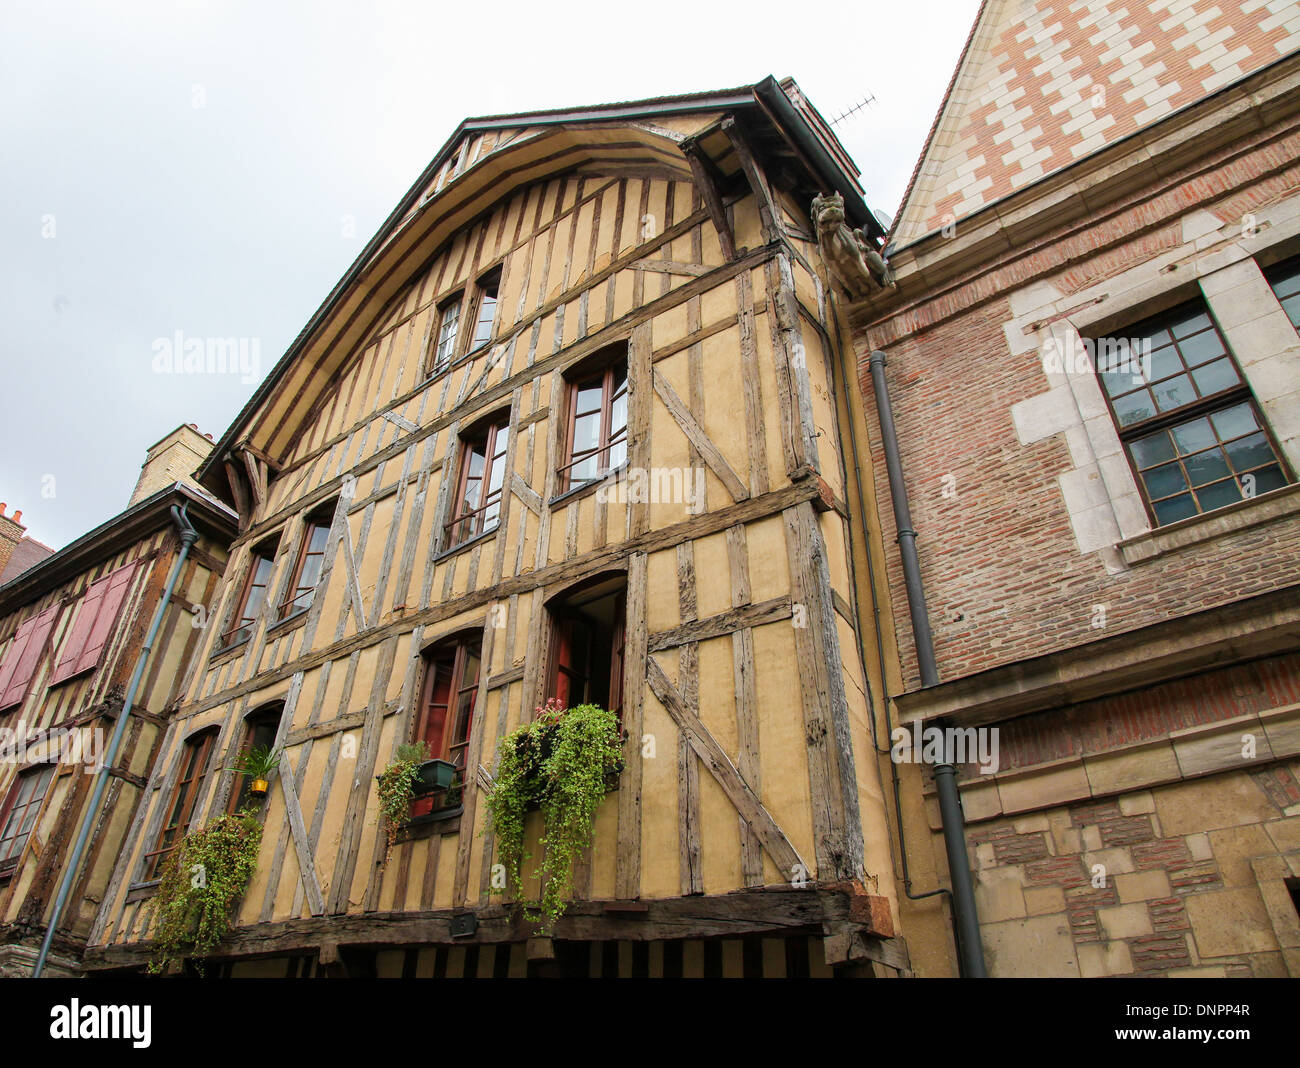 A typical half timbered house in Vezelay, Bourgogne, France. - Stock Image